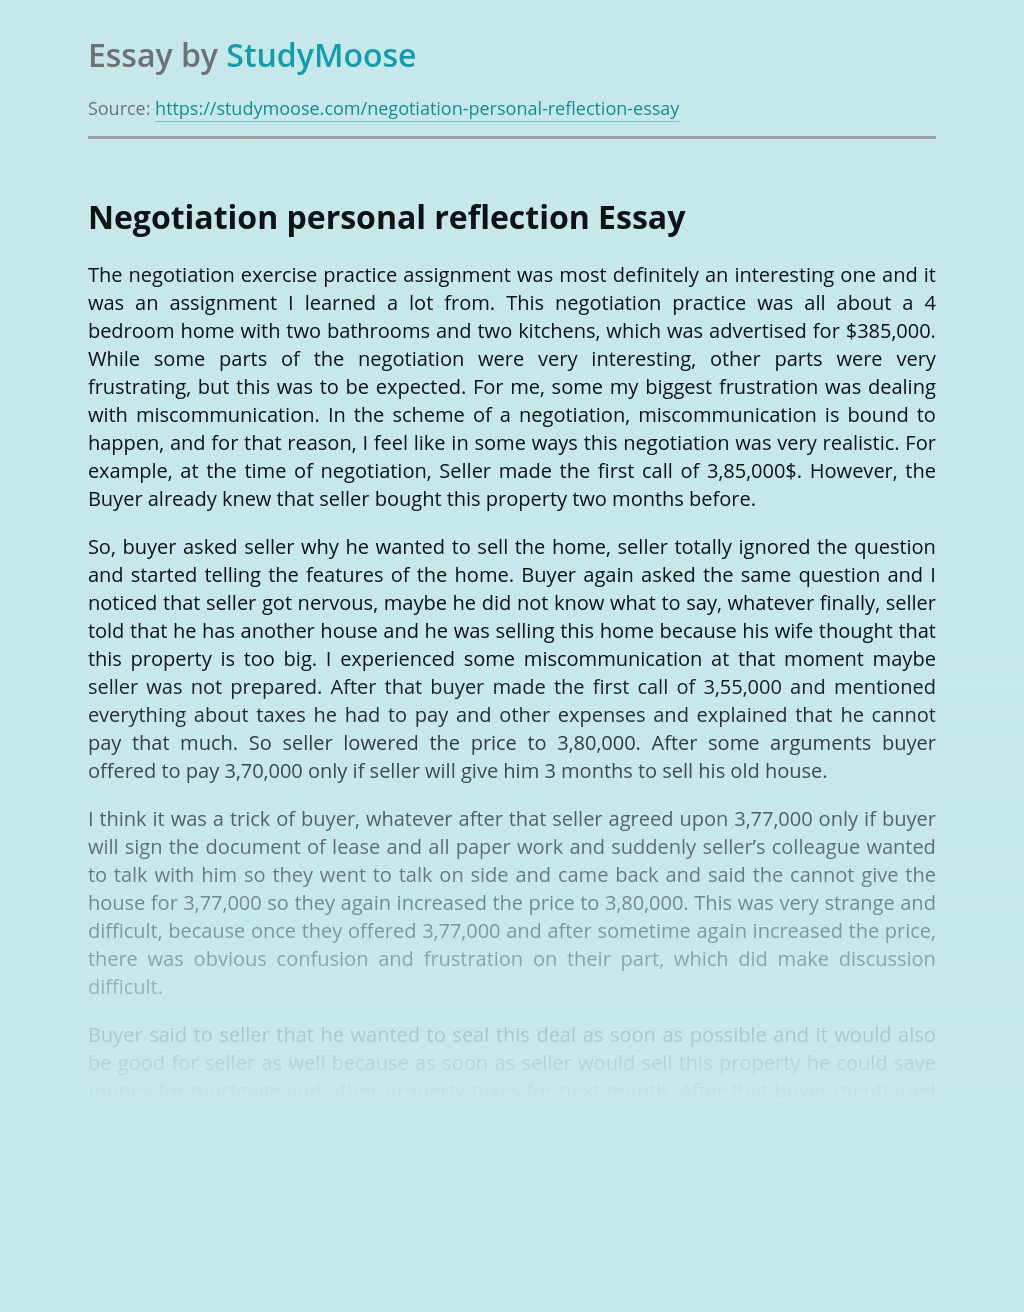 Negotiation personal reflection